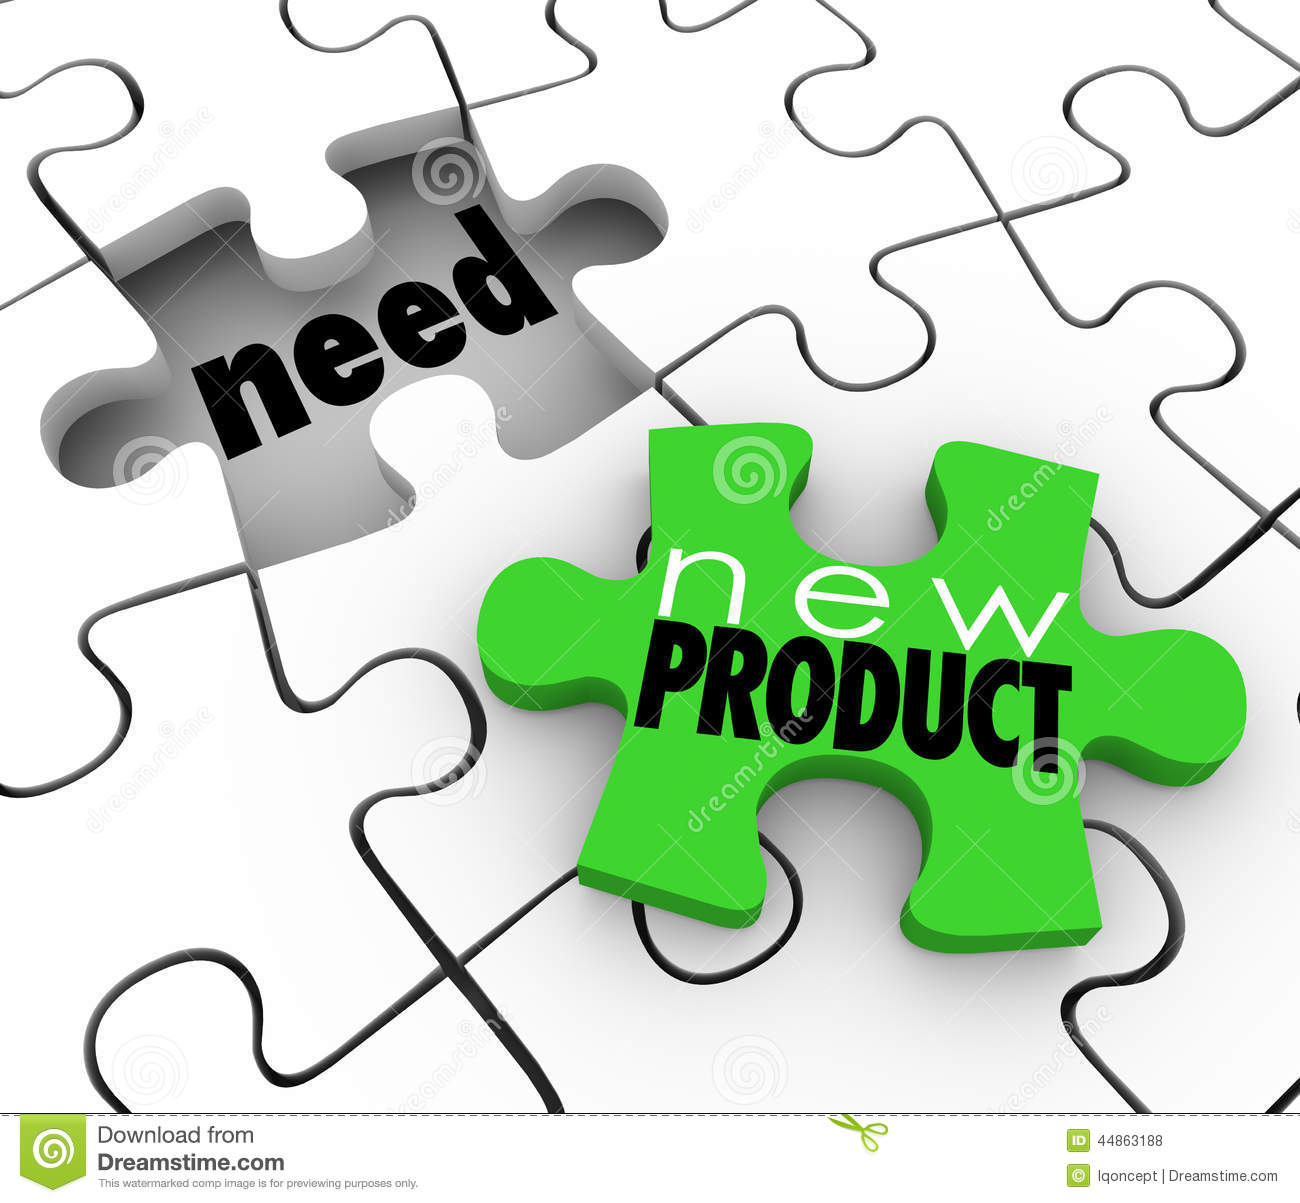 New Product Words On A Puzzle Piece Filling Customer Needs In A Gap Or